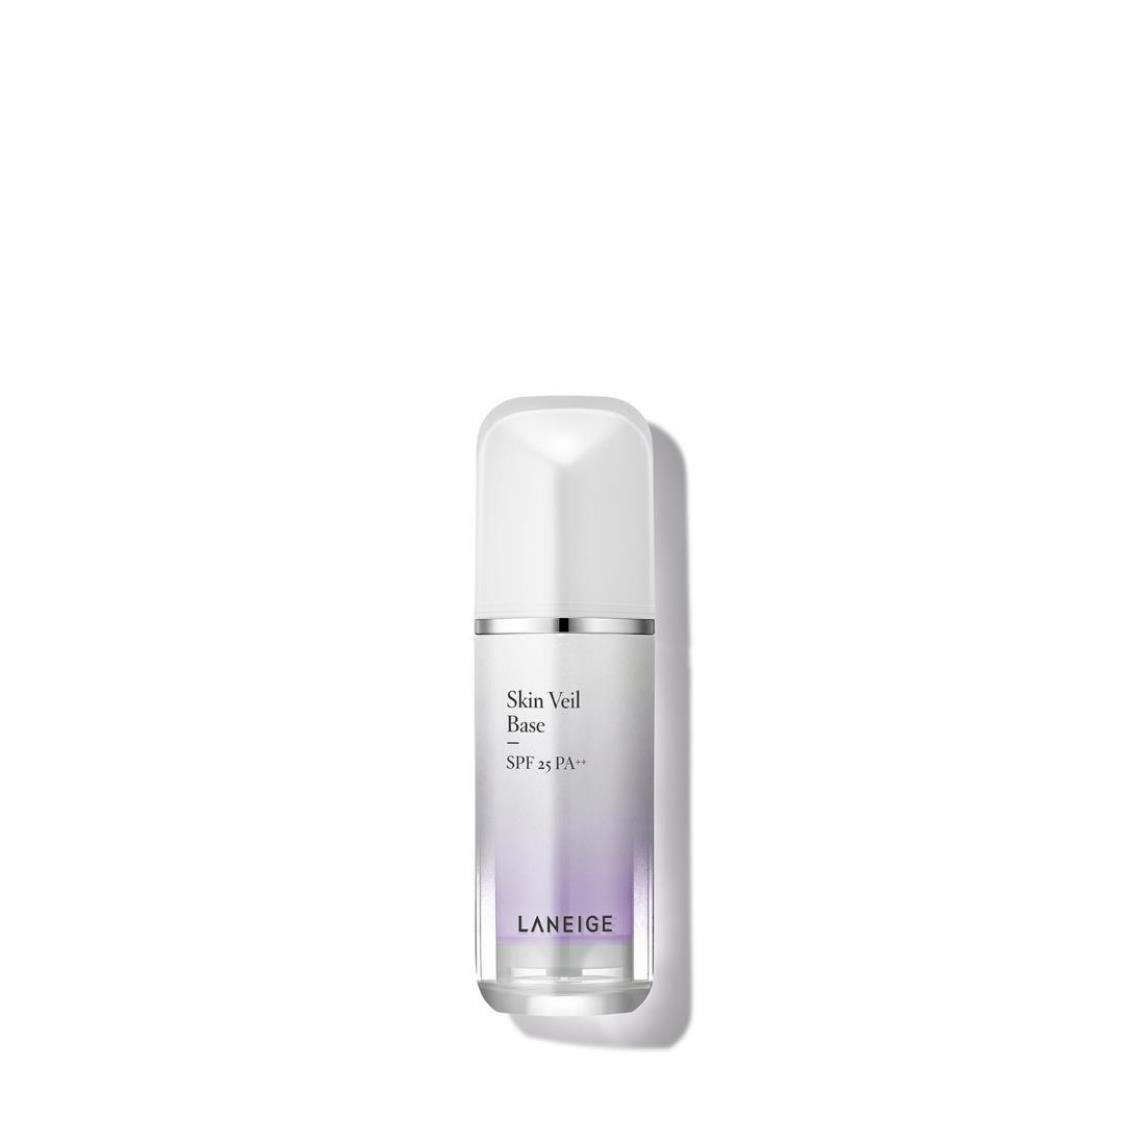 Laneige Skin Veil Base No40 Pure Violet SPF 23 30ml